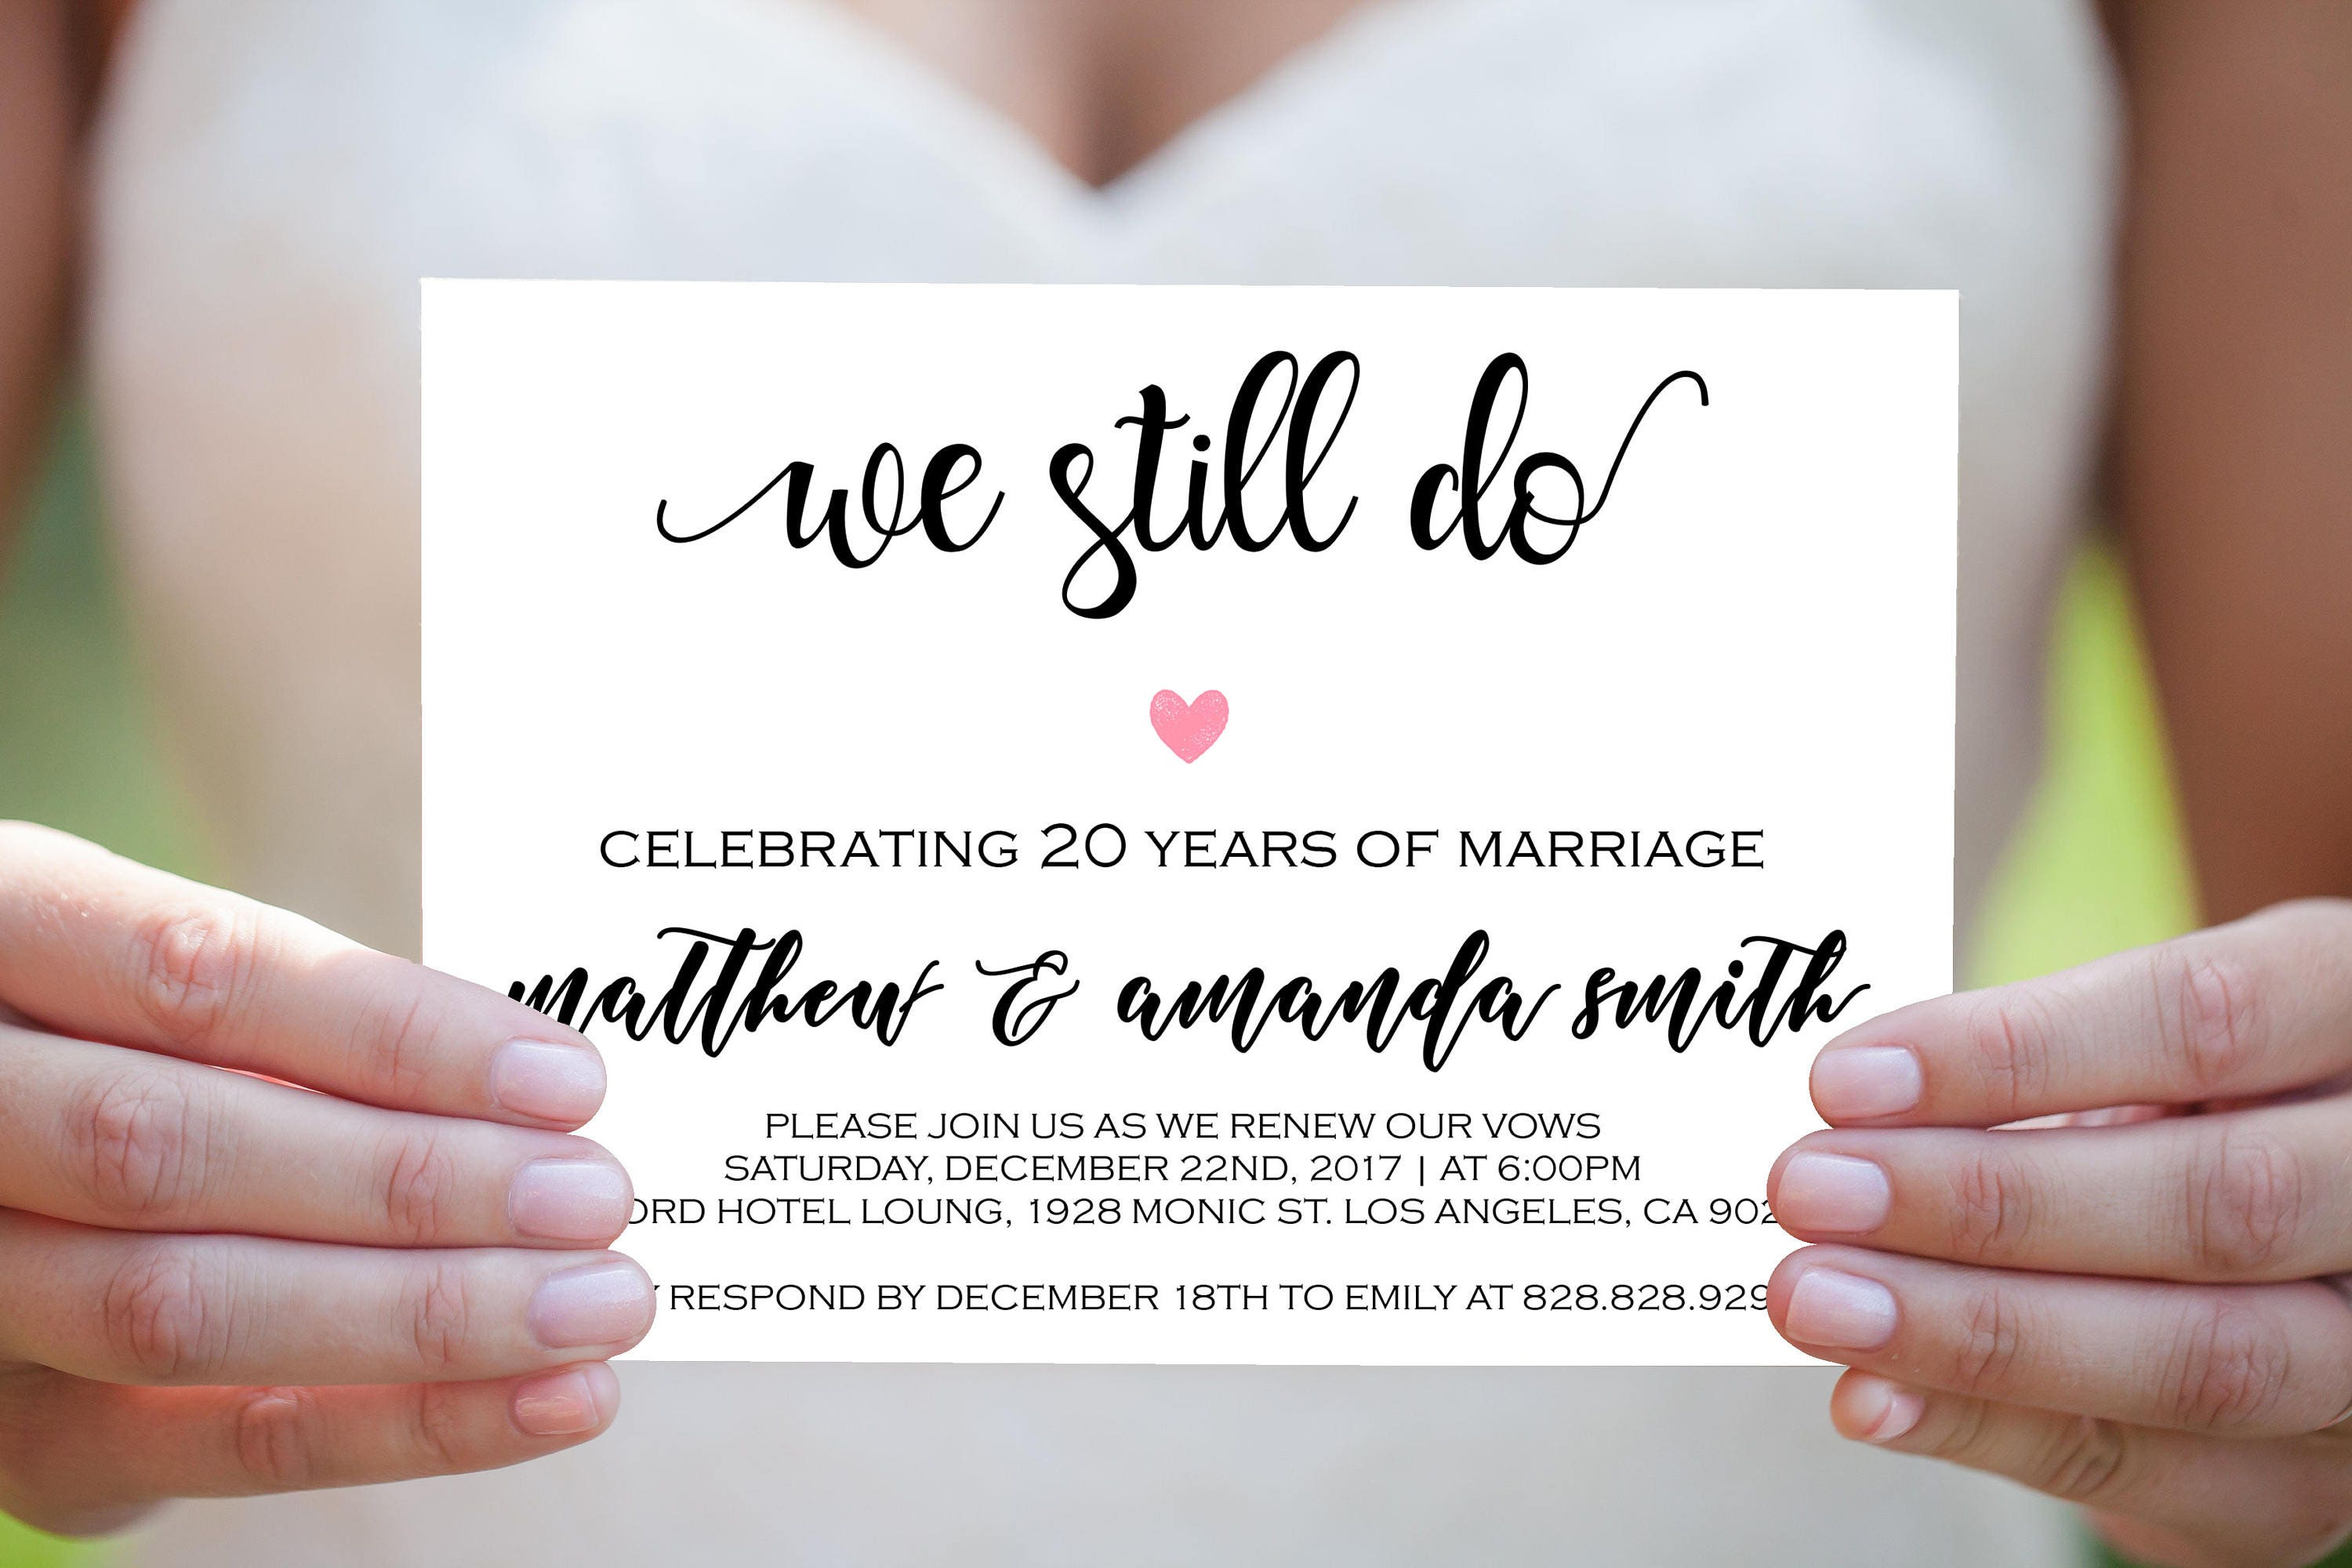 We Still Do Invitations - Vow Renewal Invitation Template ...